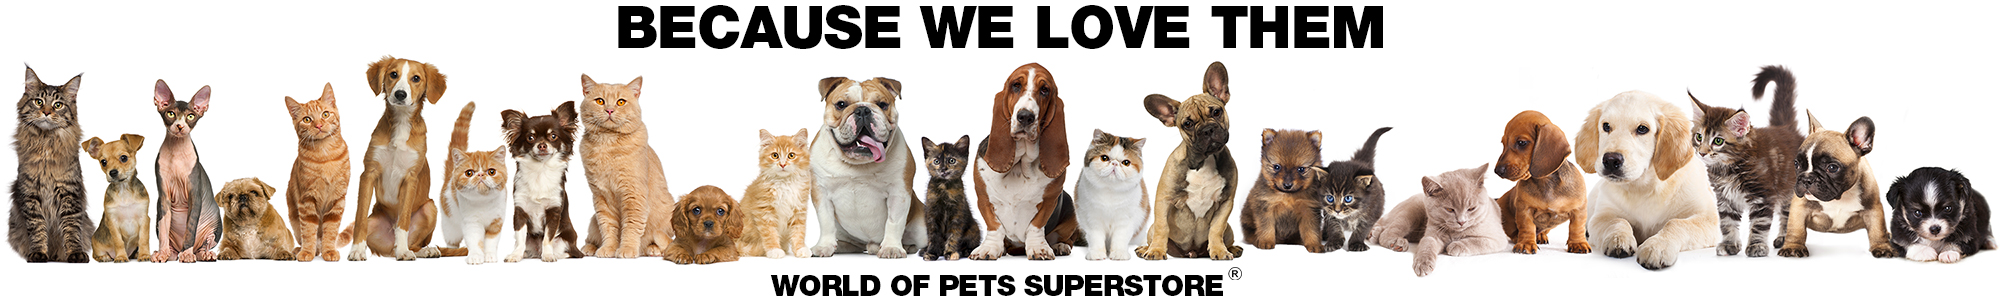 A whole bunch of cats and dogs because we love them